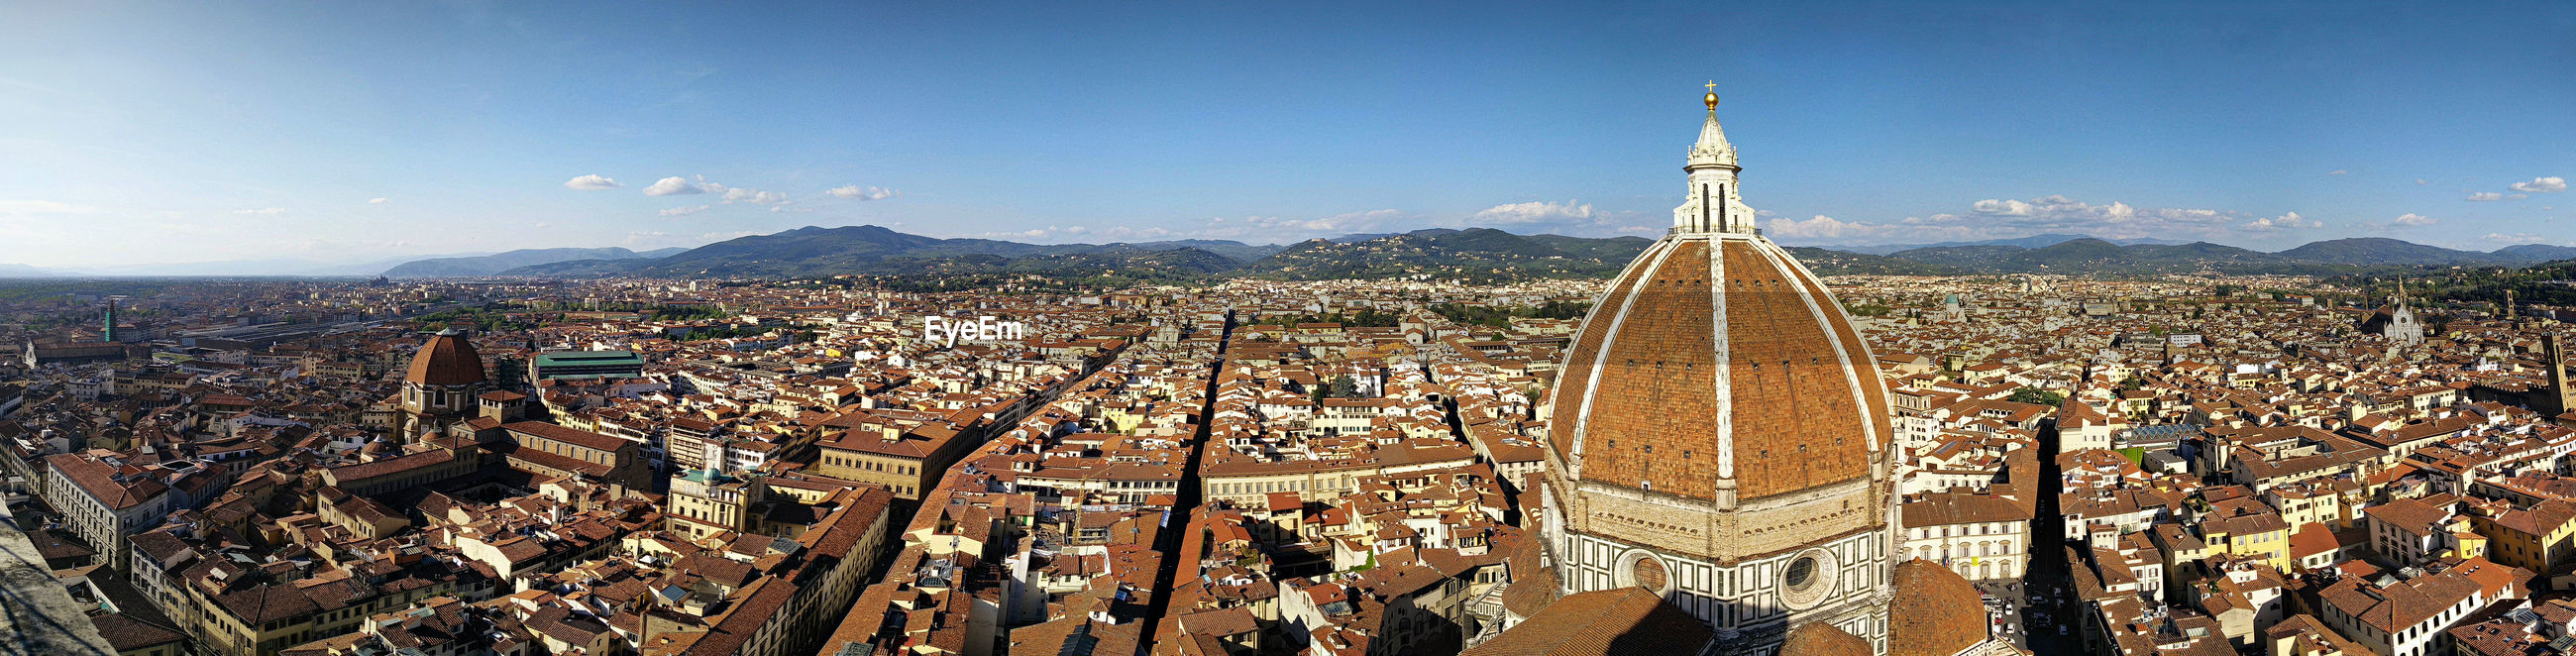 Panoramic view of duomo santa maria del fiore with cityscape against sky